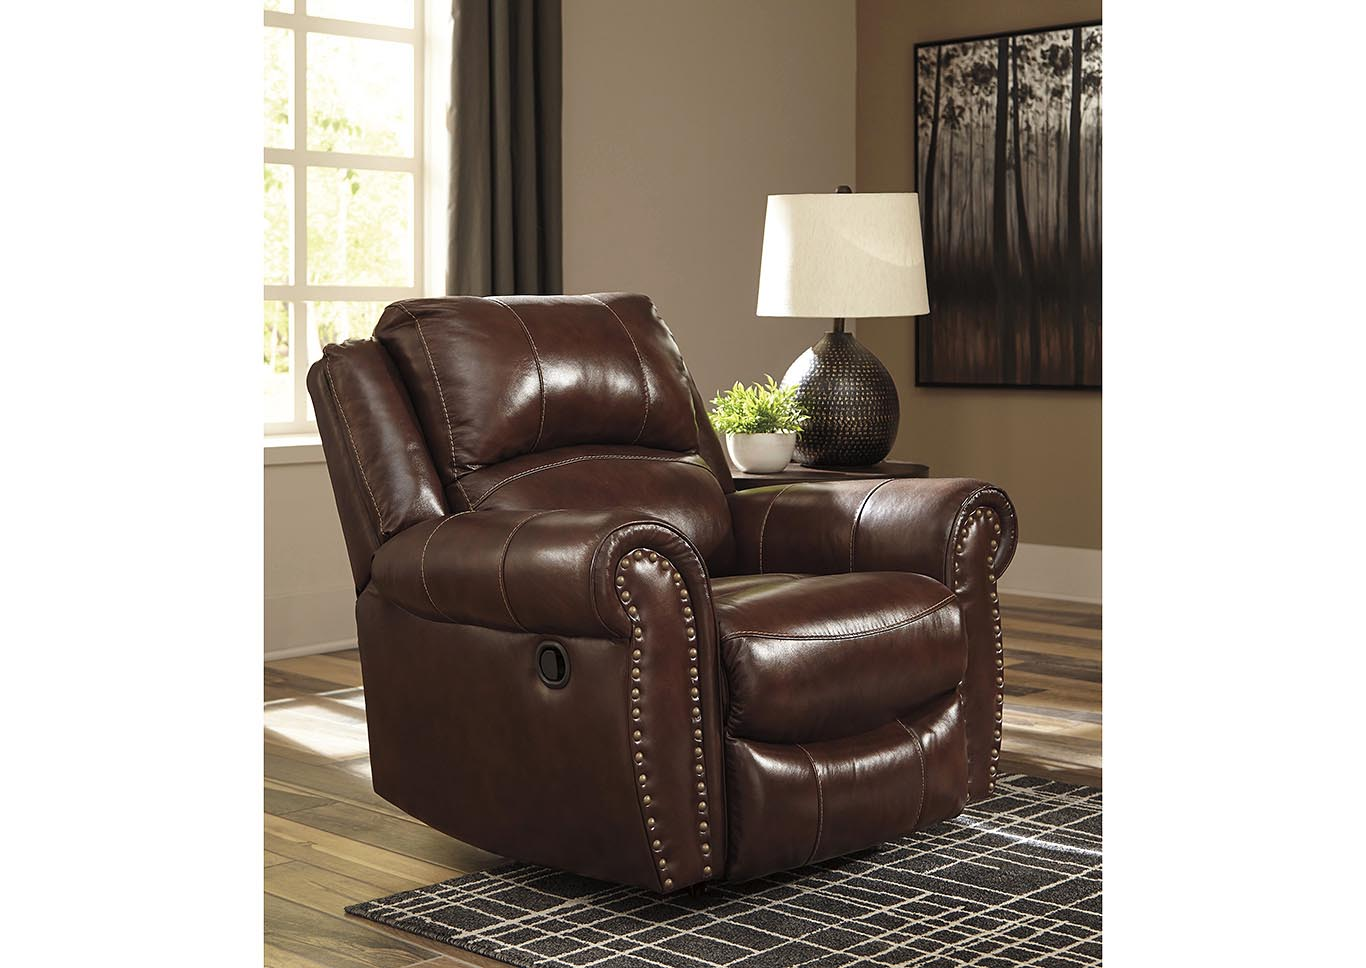 Bingen Harness Rocker Recliner,Signature Design By Ashley